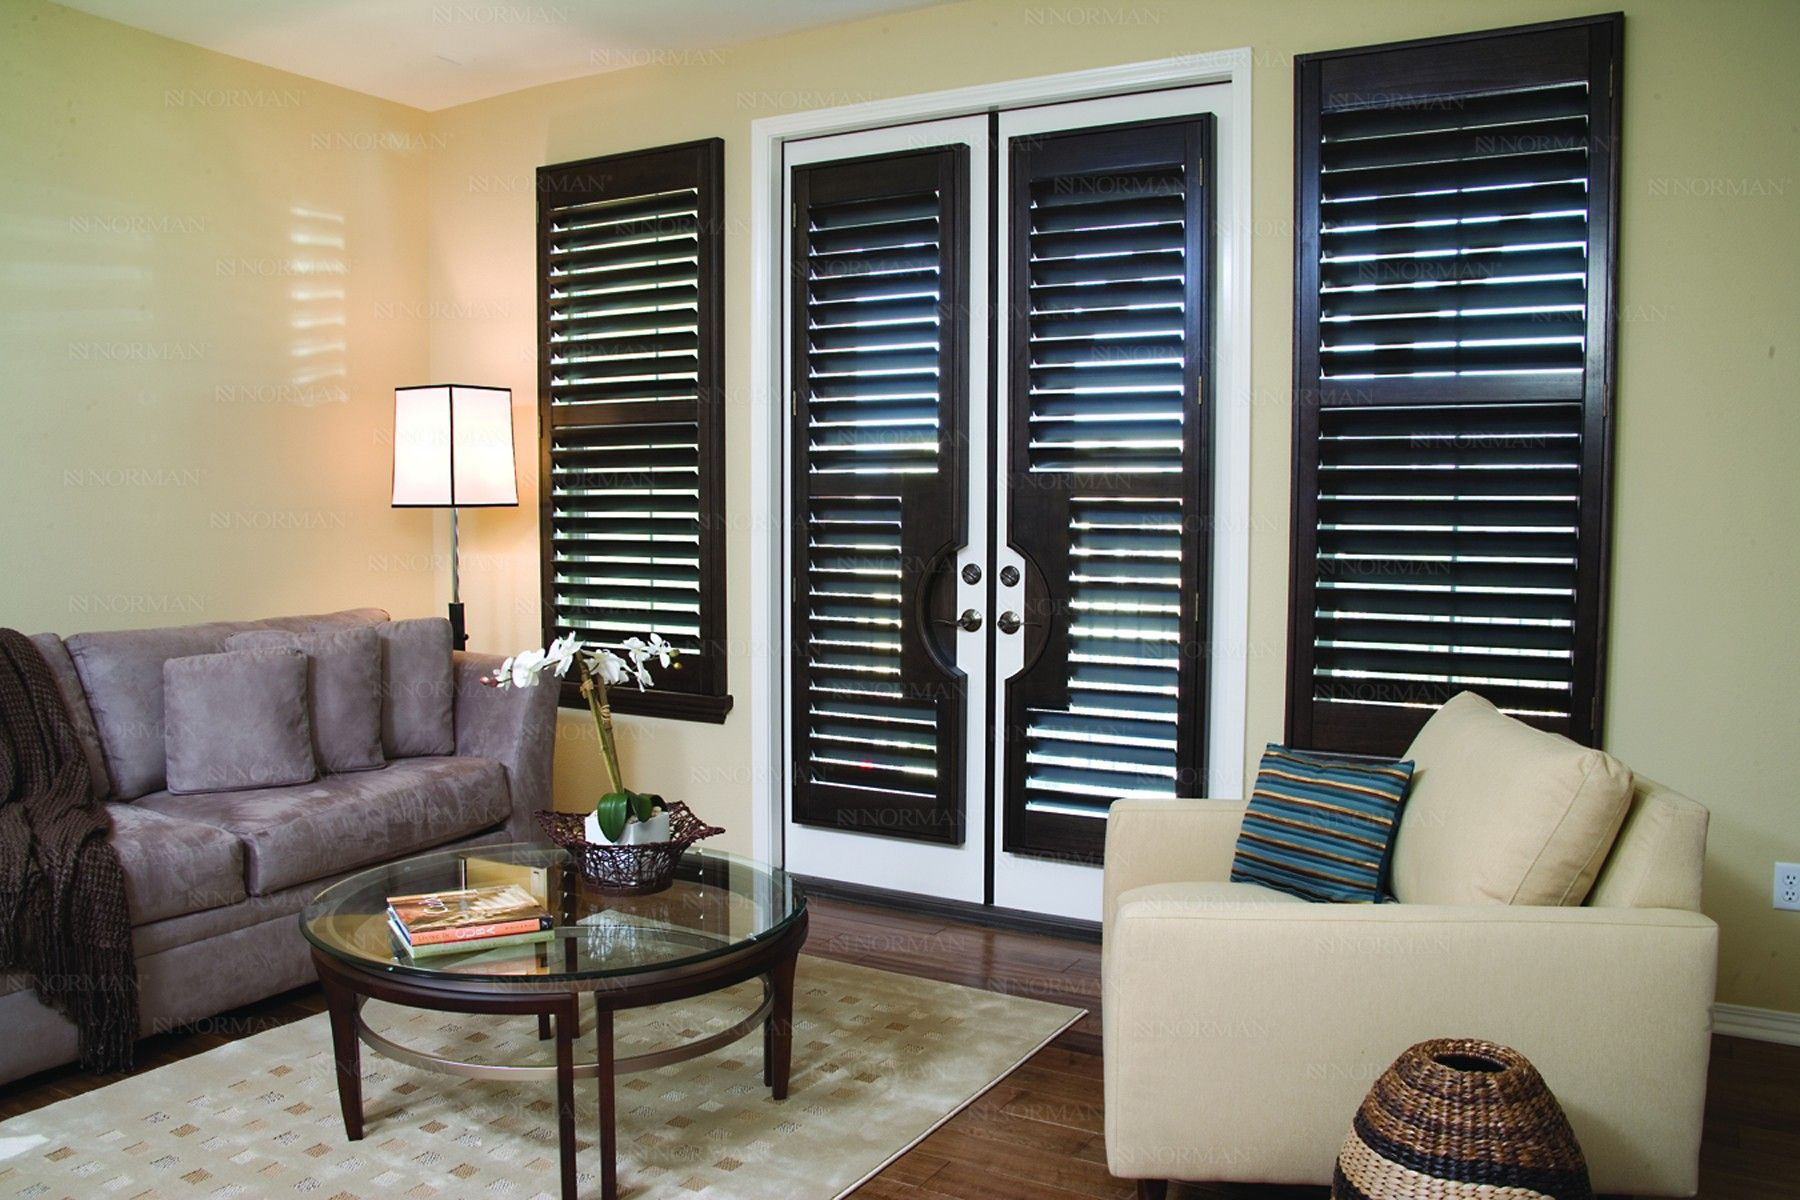 Interior Exterior White French Doors With Black Venetian Blinds